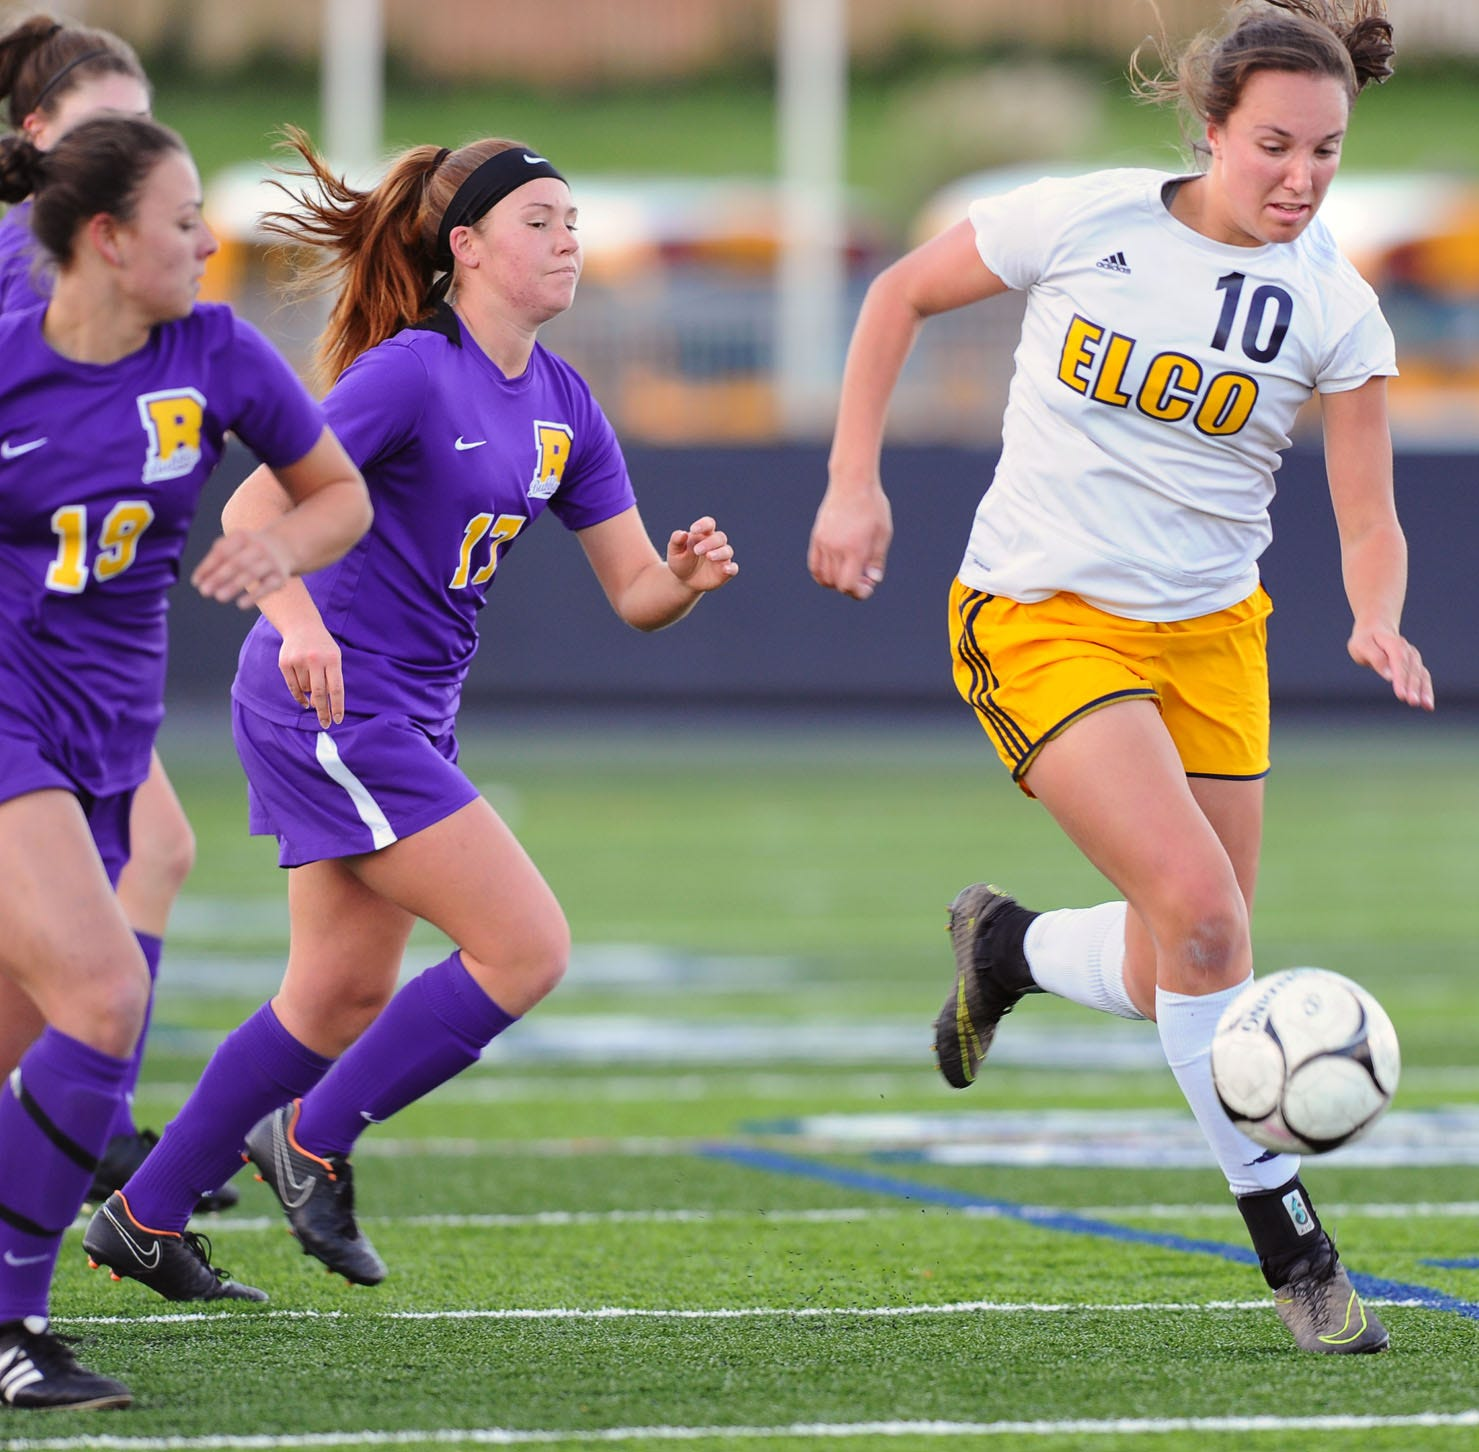 Elco standout Ryelle Shuey set for another summer of semi-pro soccer